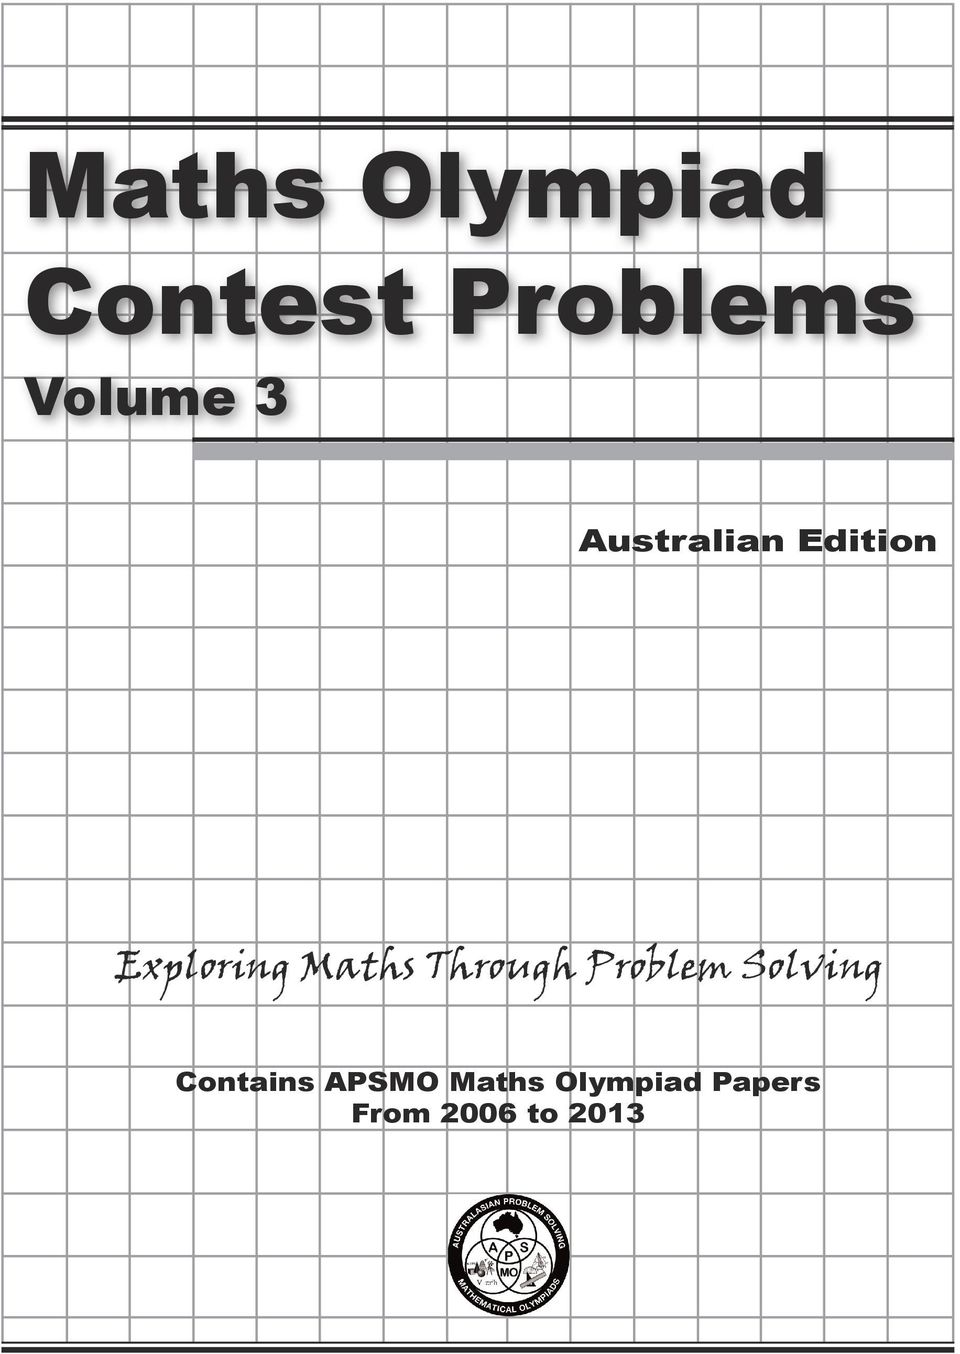 Maths Olympiad Contest Problems - PDF